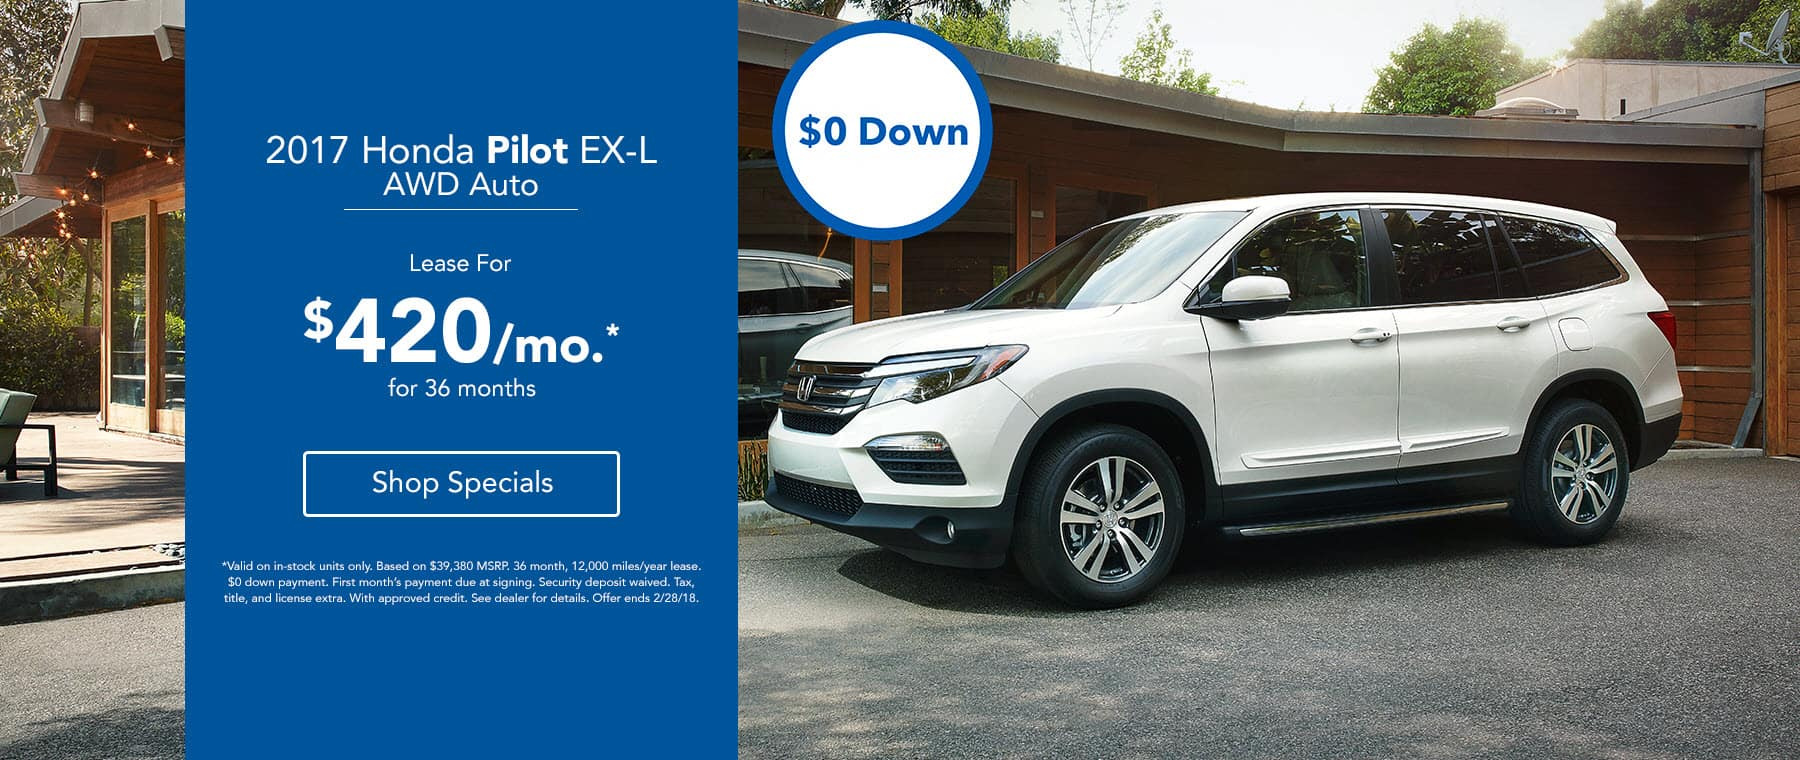 Honda Pilot Lease for $420/mo.